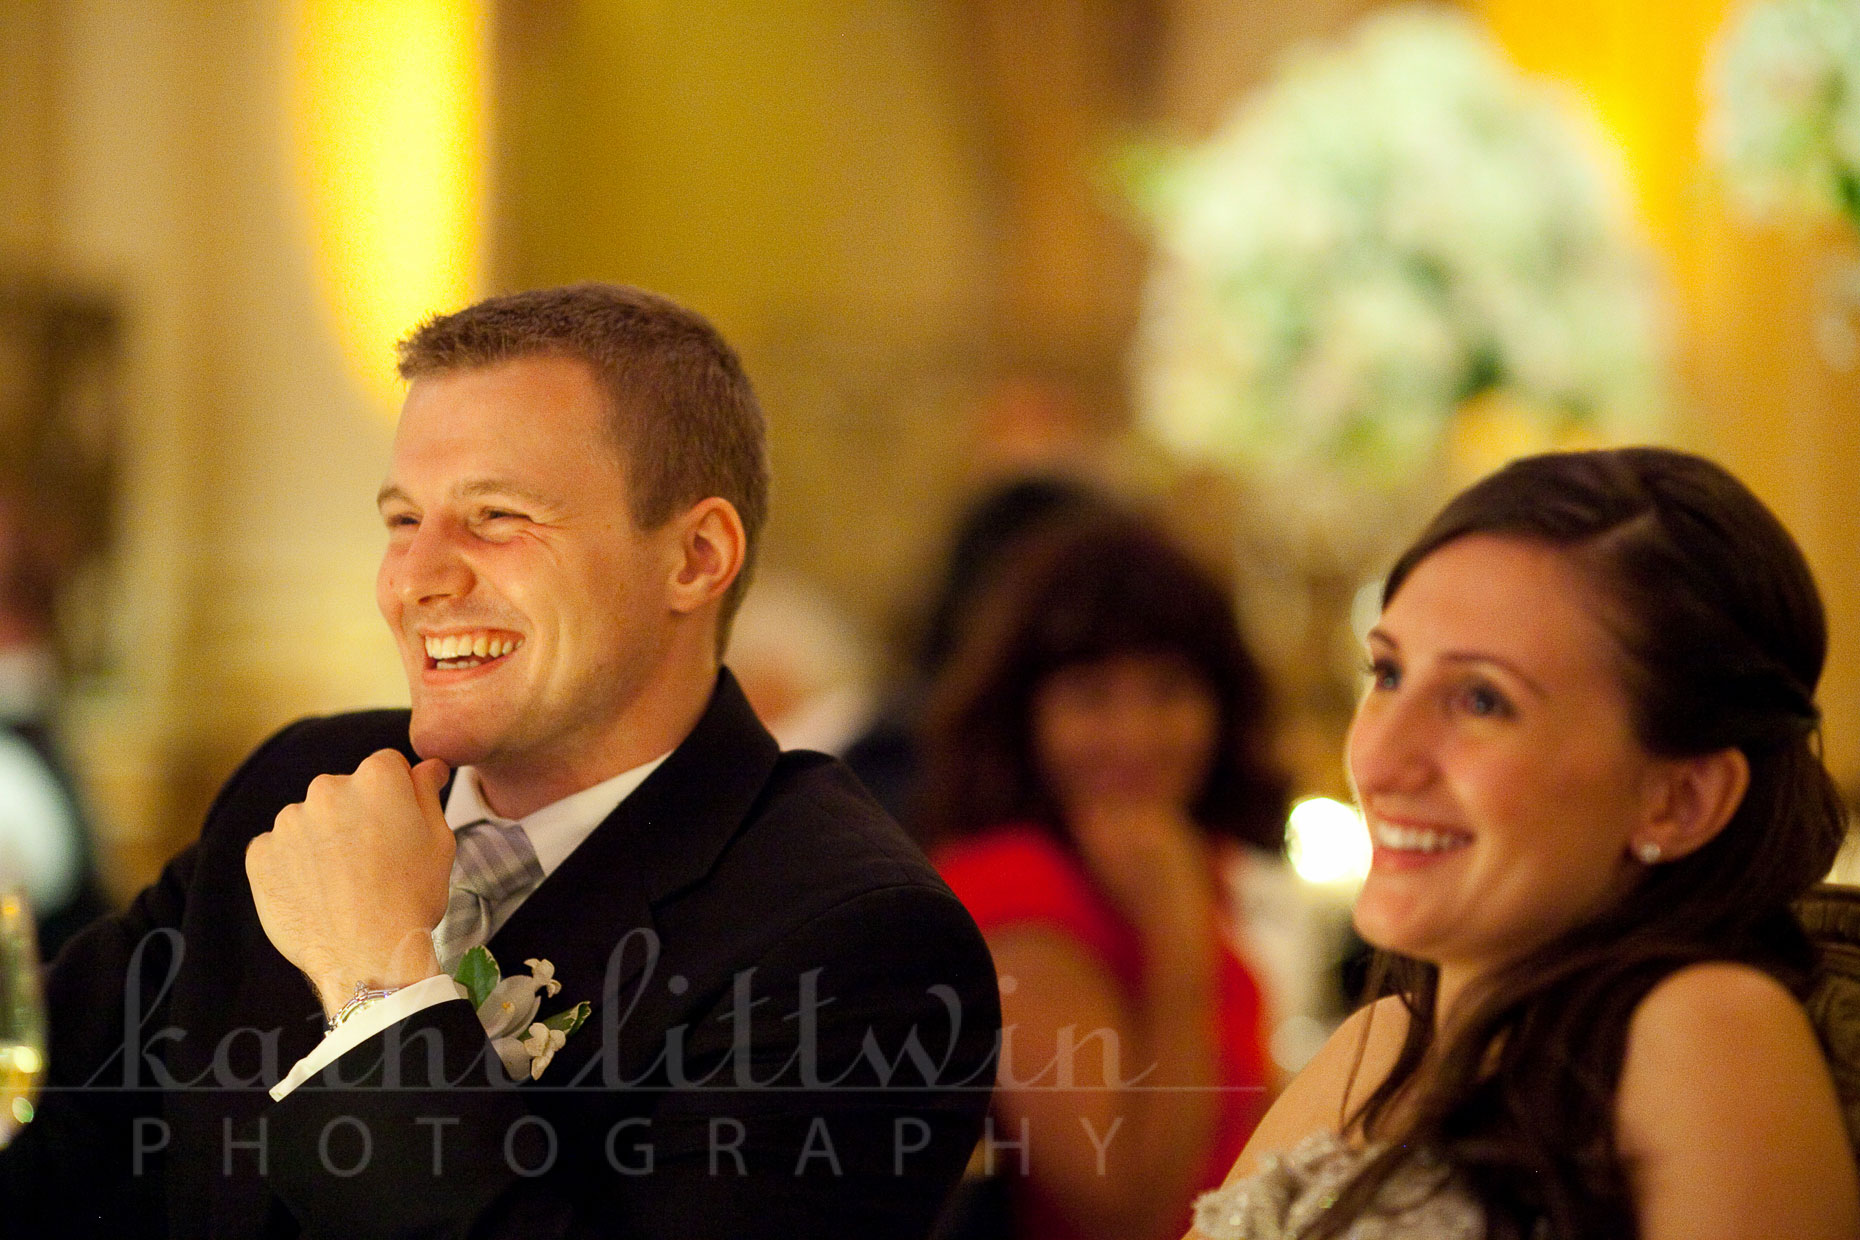 Kathi_Littwin_Photography_Plaza_NYC_Wedding-2093